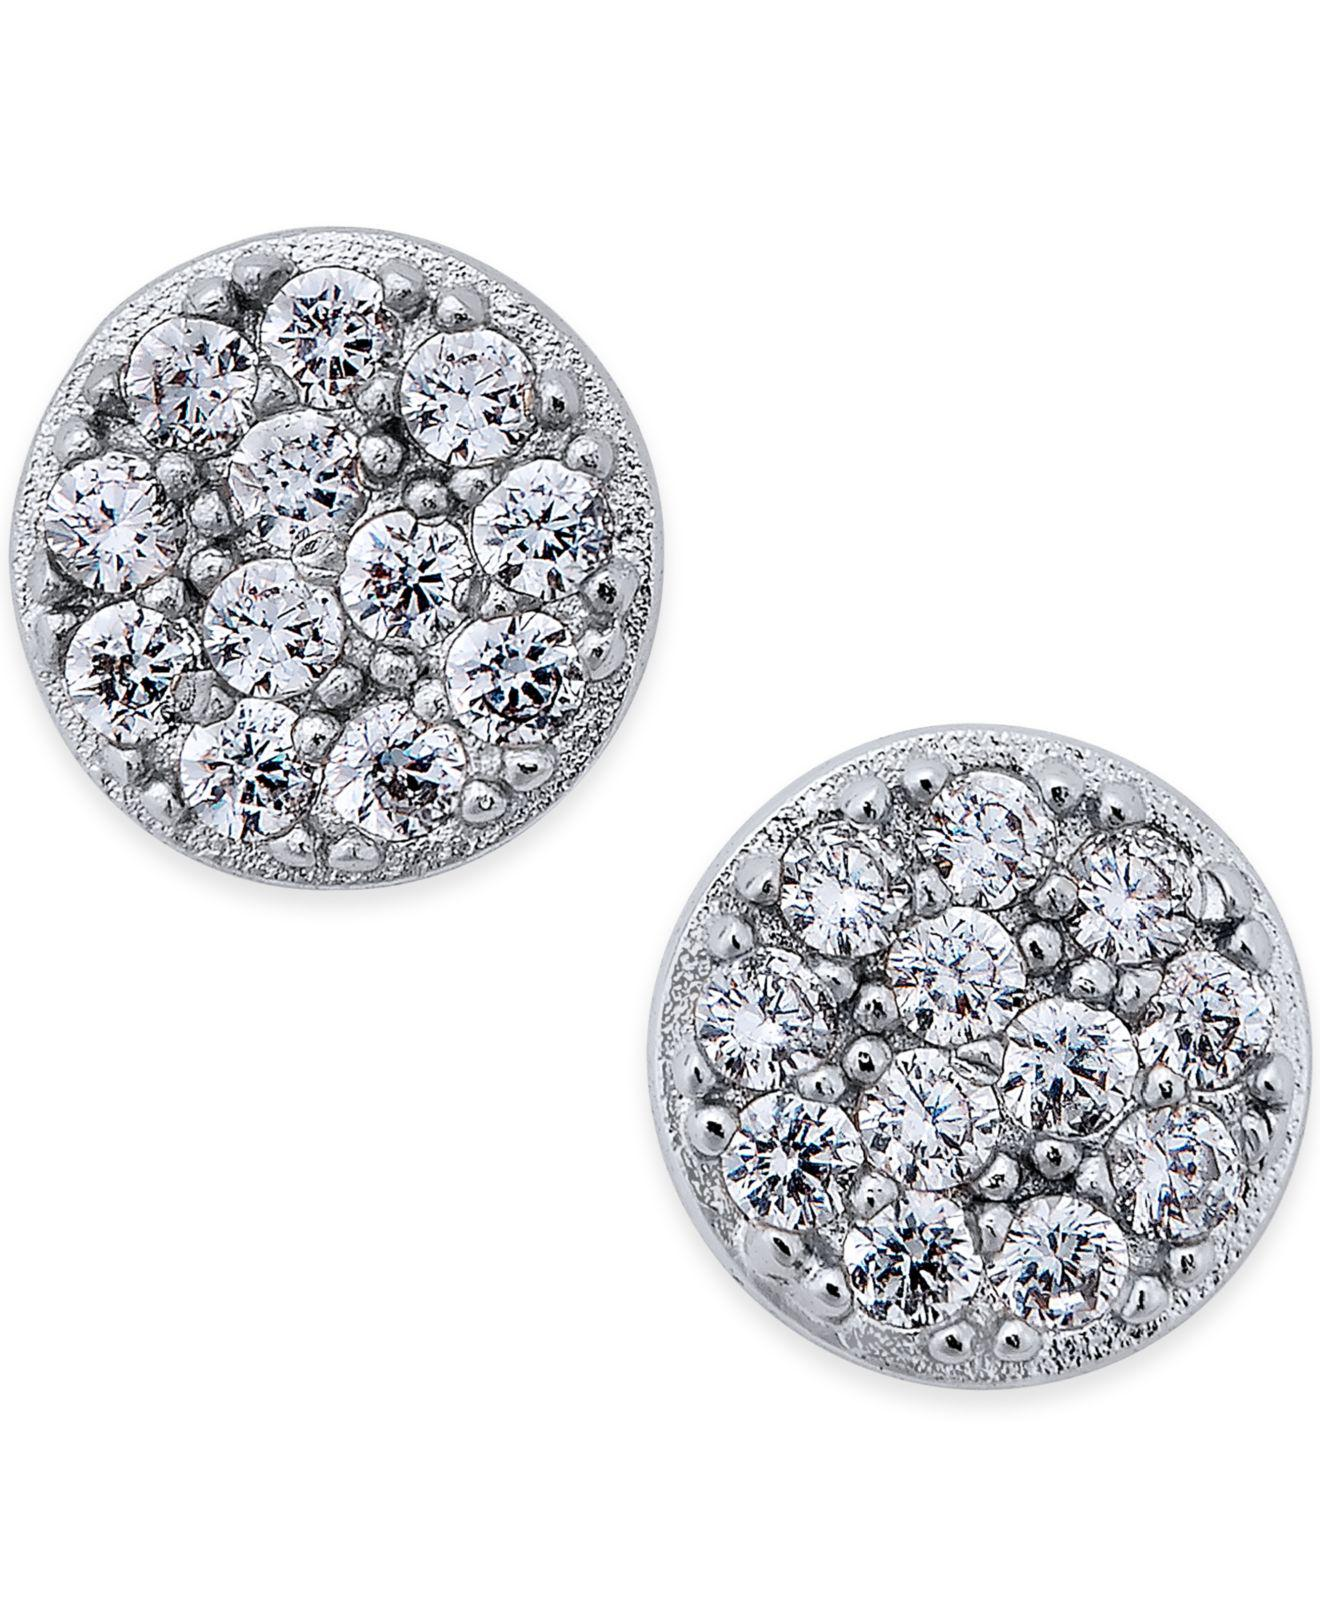 zirconia pdp john rsp buyfinesse finesse cubic silver main earrings com johnlewis online at stud lewis